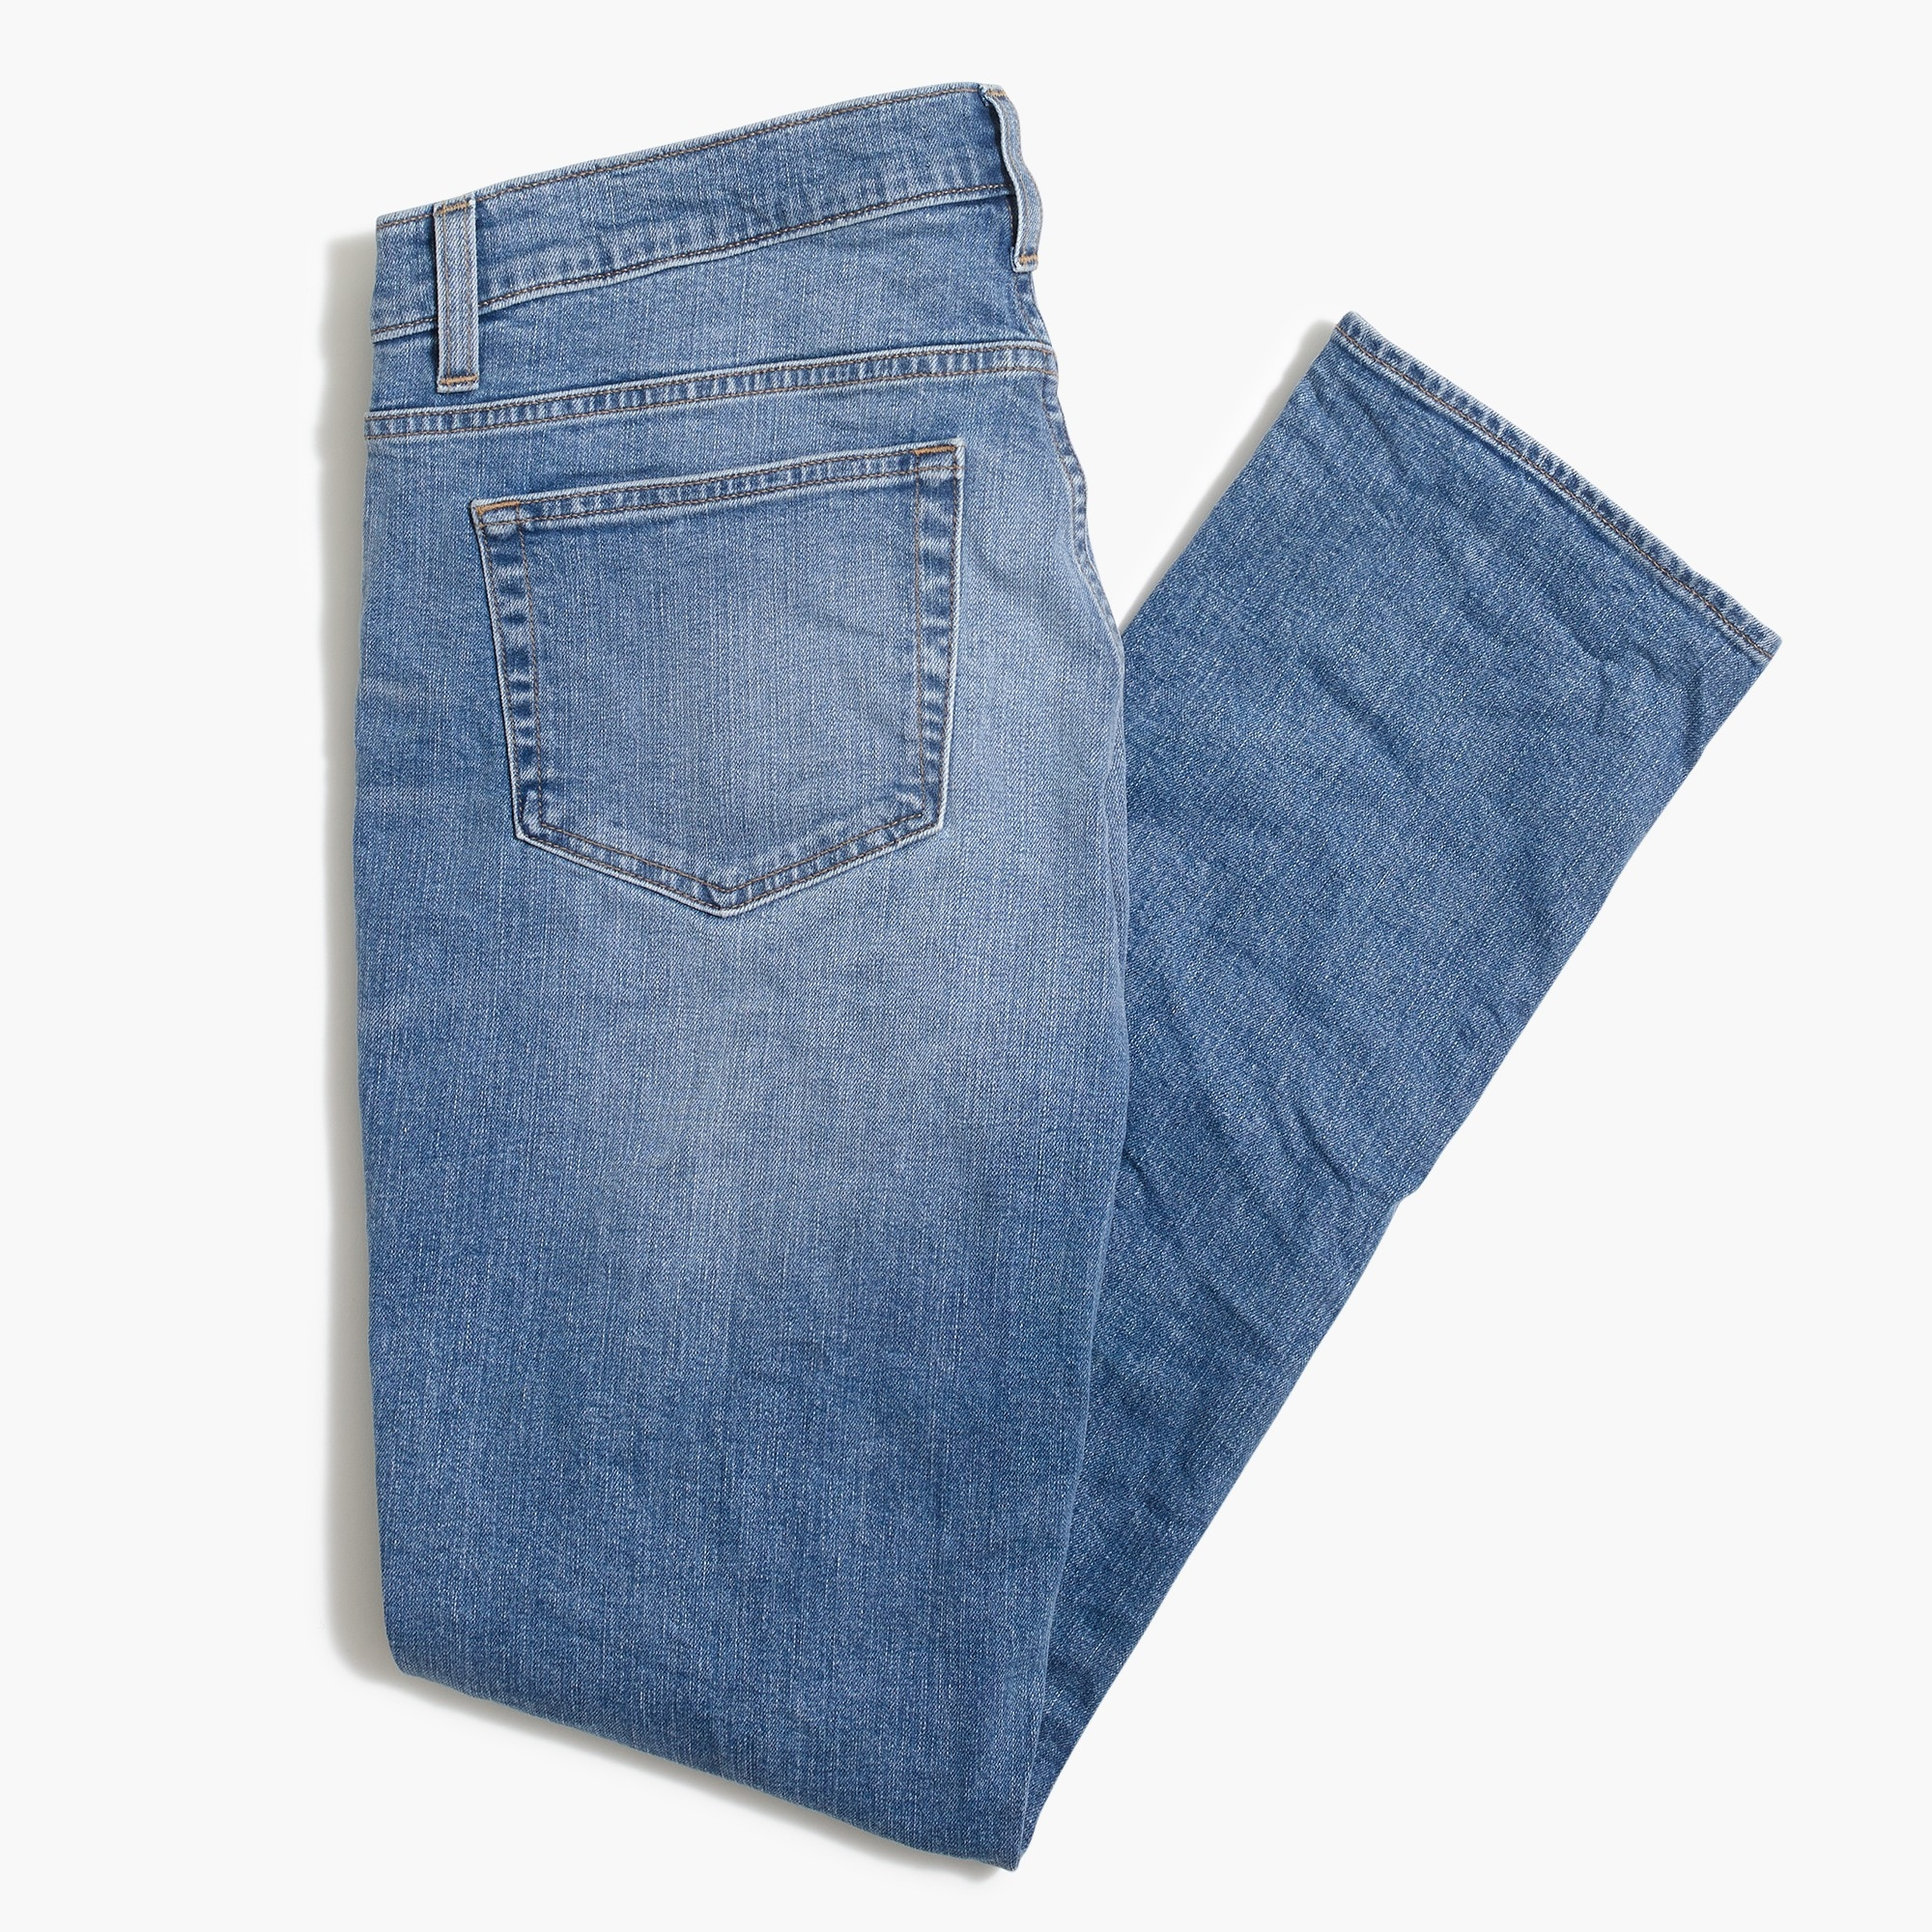 Slim-fit flex jean in light wash